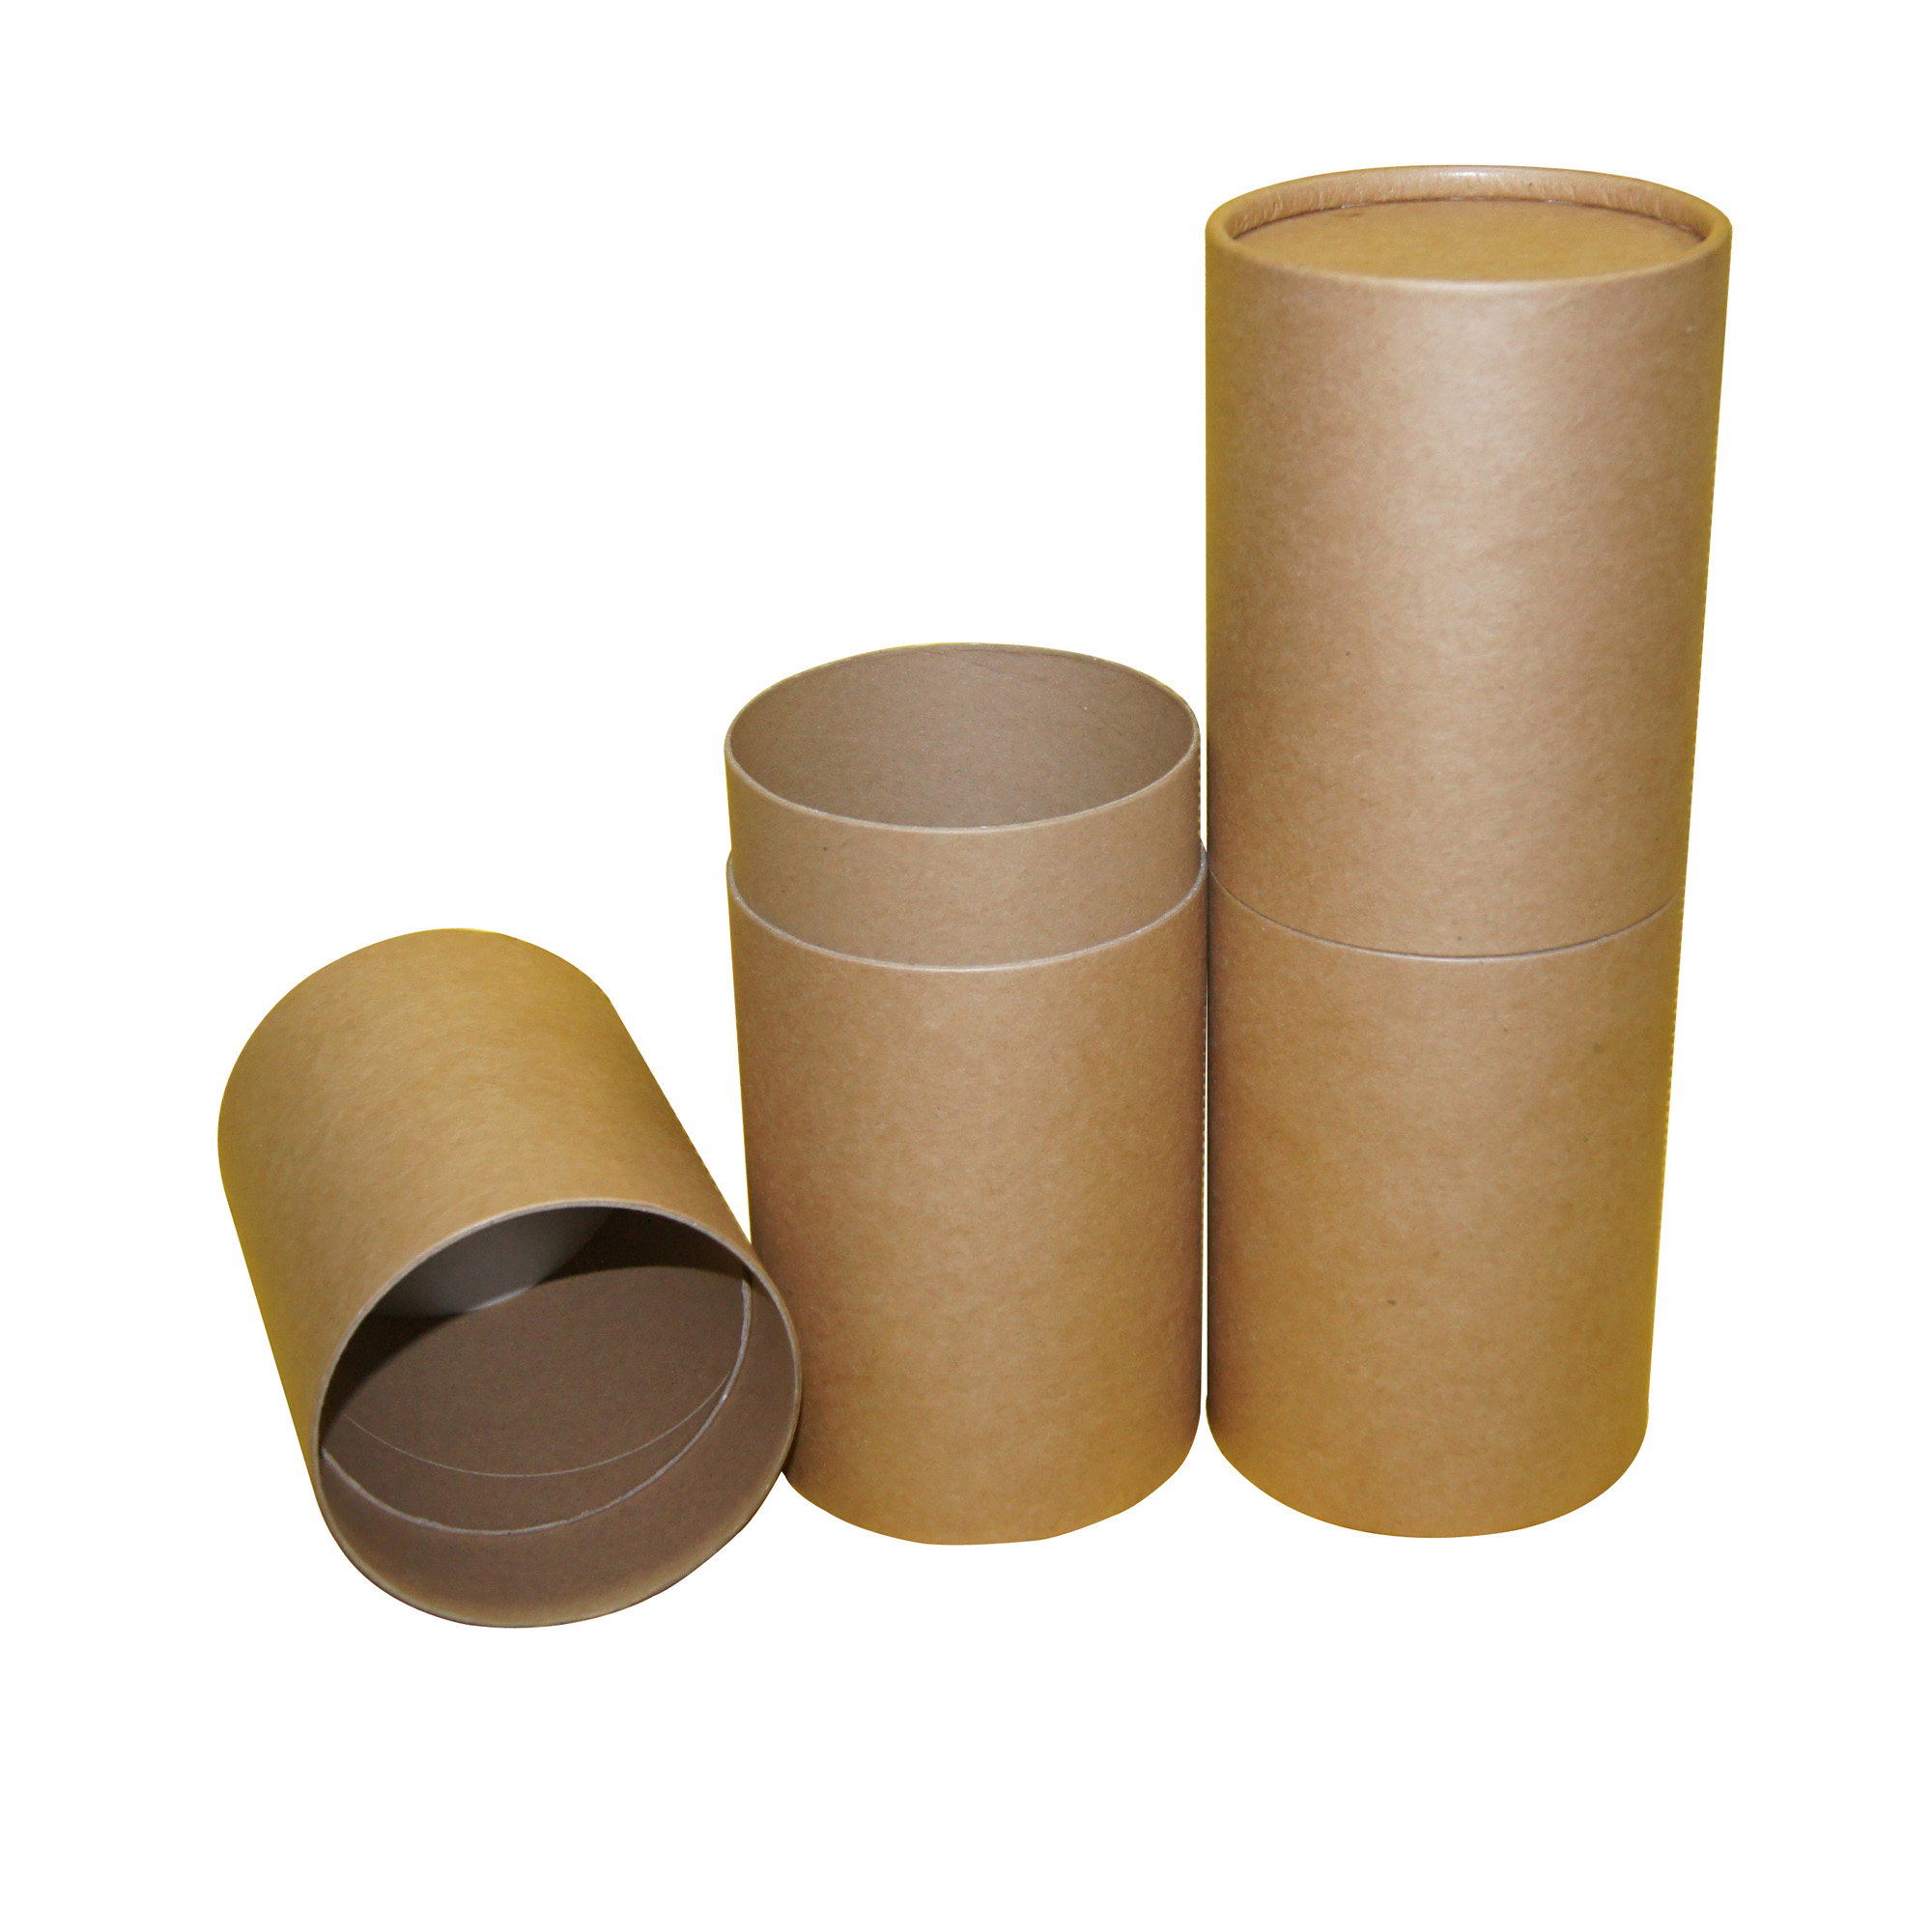 Funeral Paper Scatter Tube Cremation Urnas For Animal Ashes Pet Urns Biodegradable